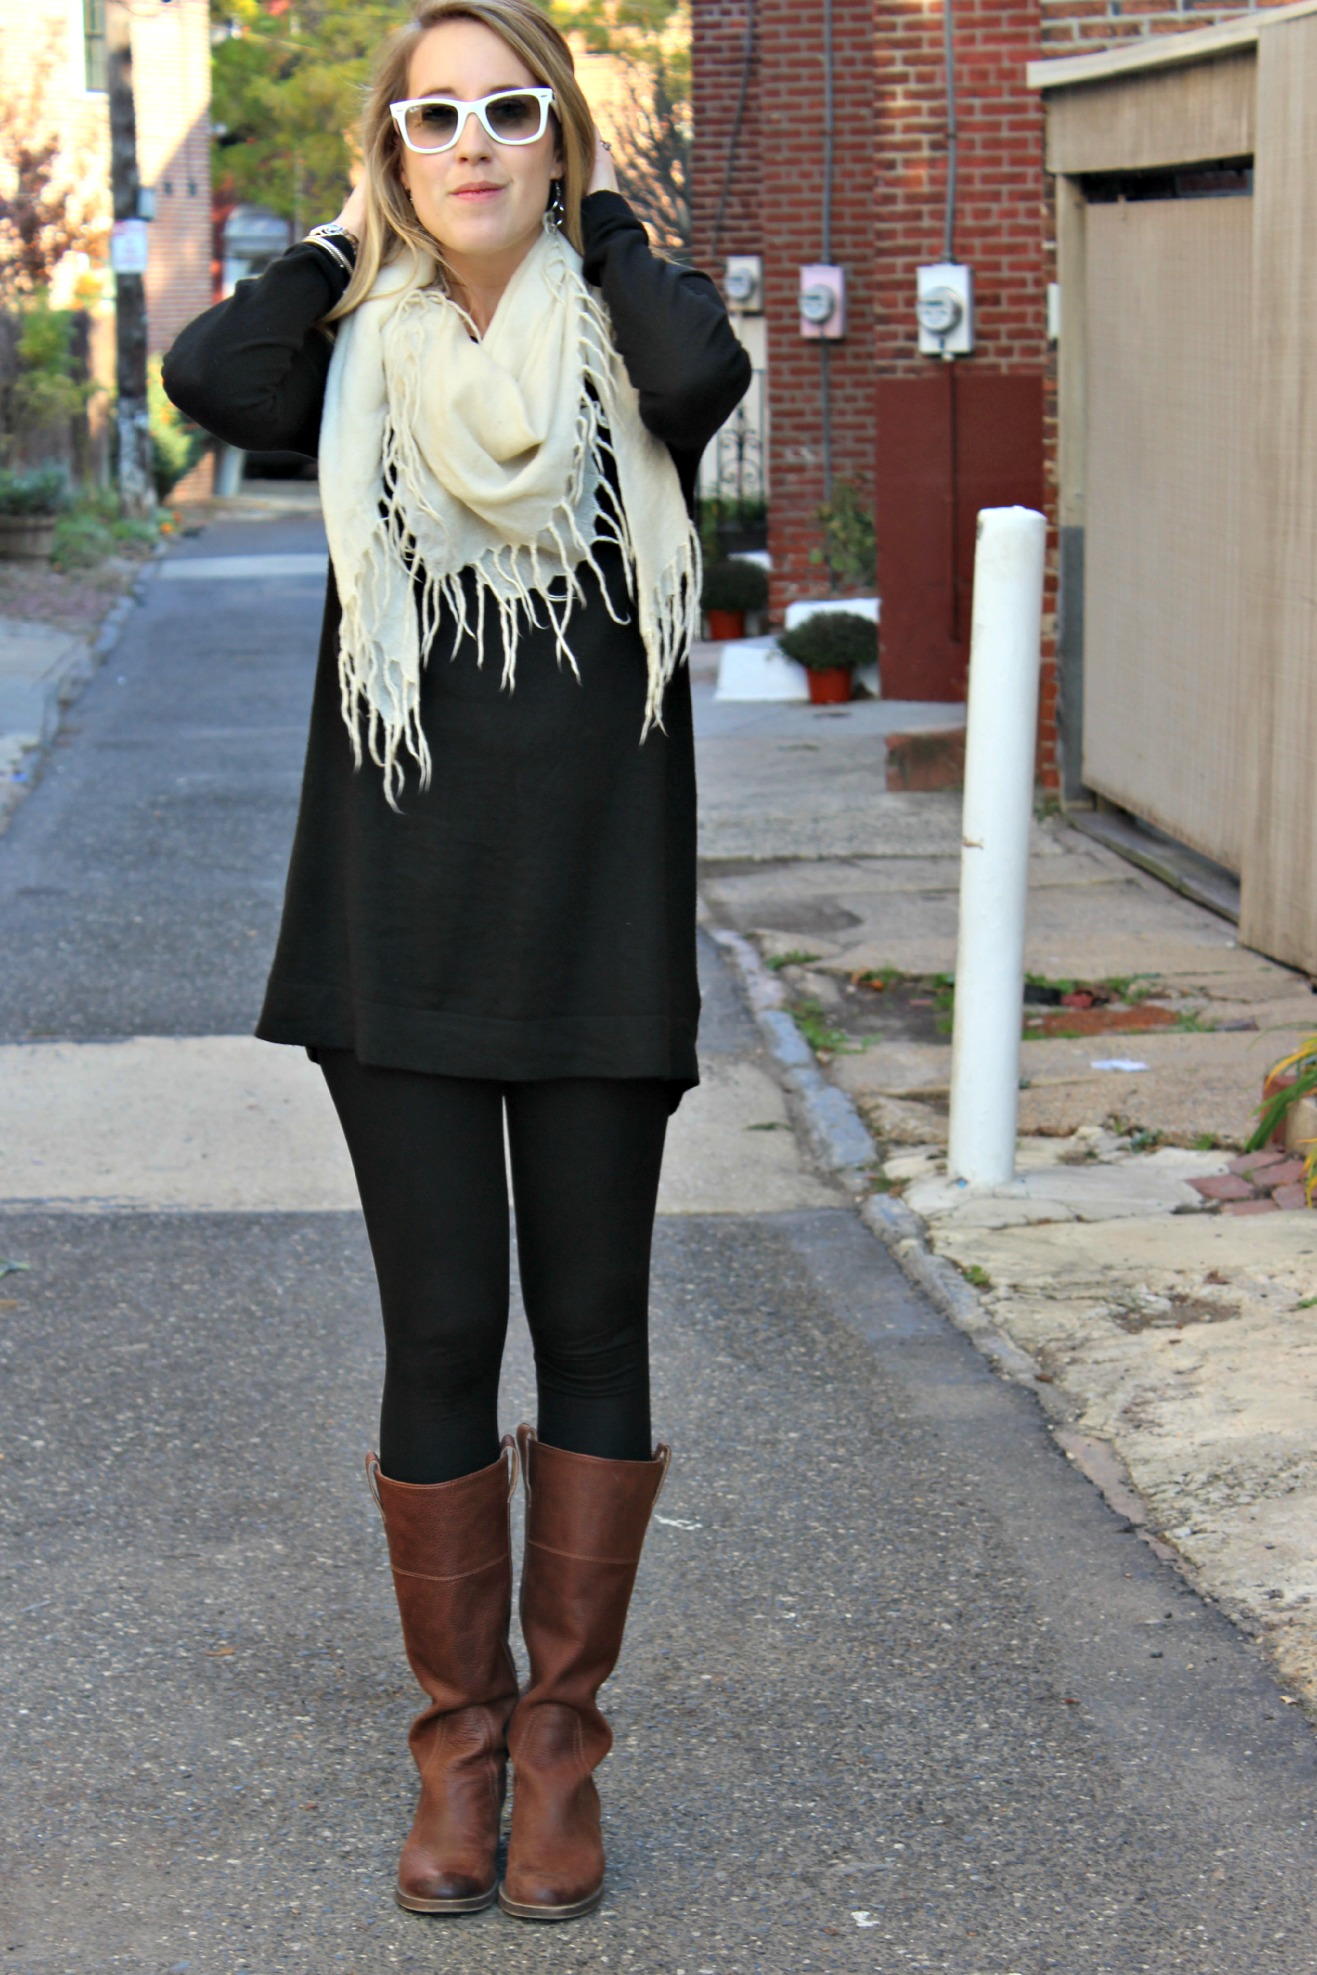 Wearing: The Lady in Black